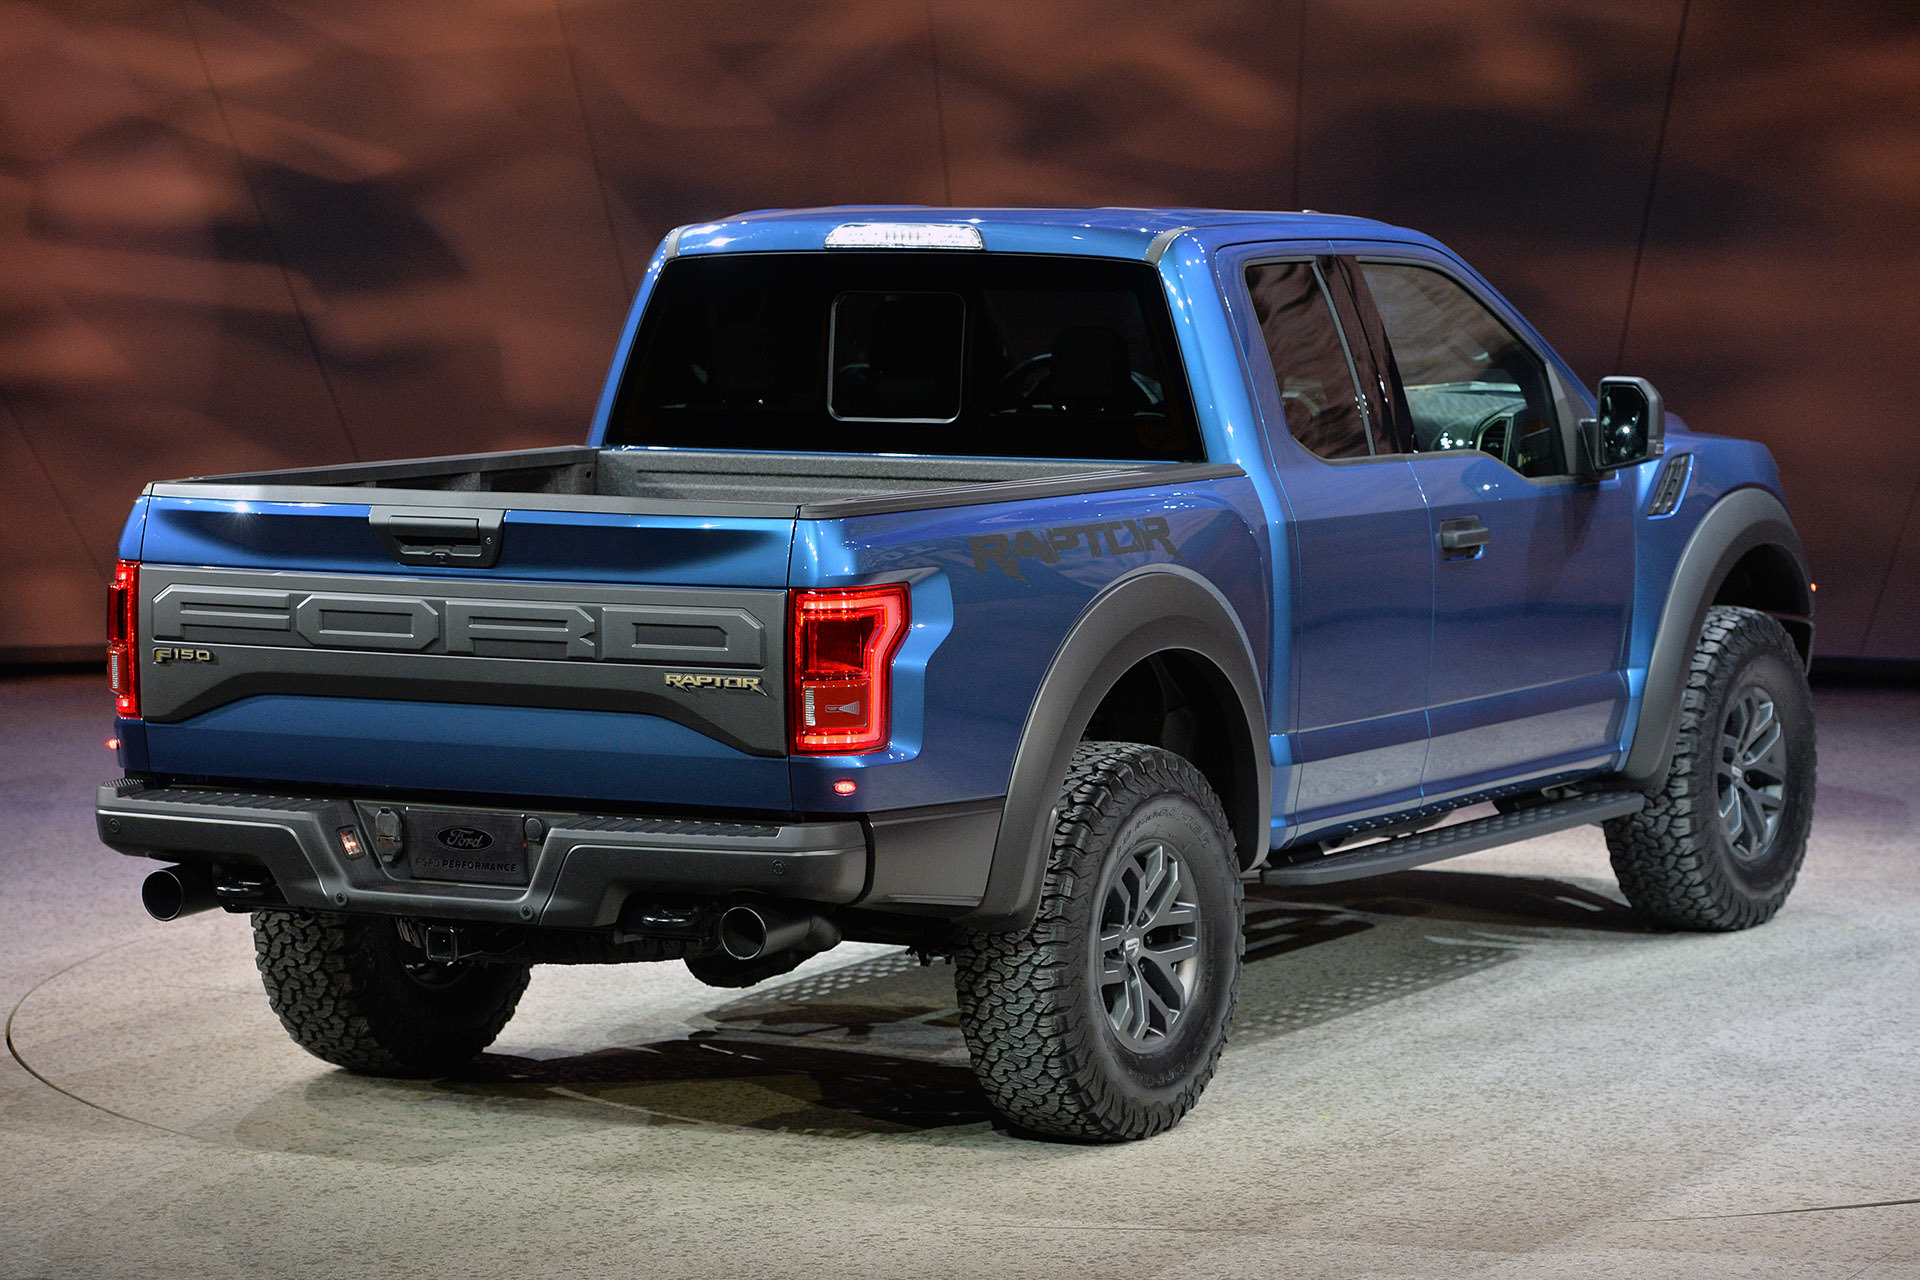 you all are haters if you think the F150 is ugly that truck is bad